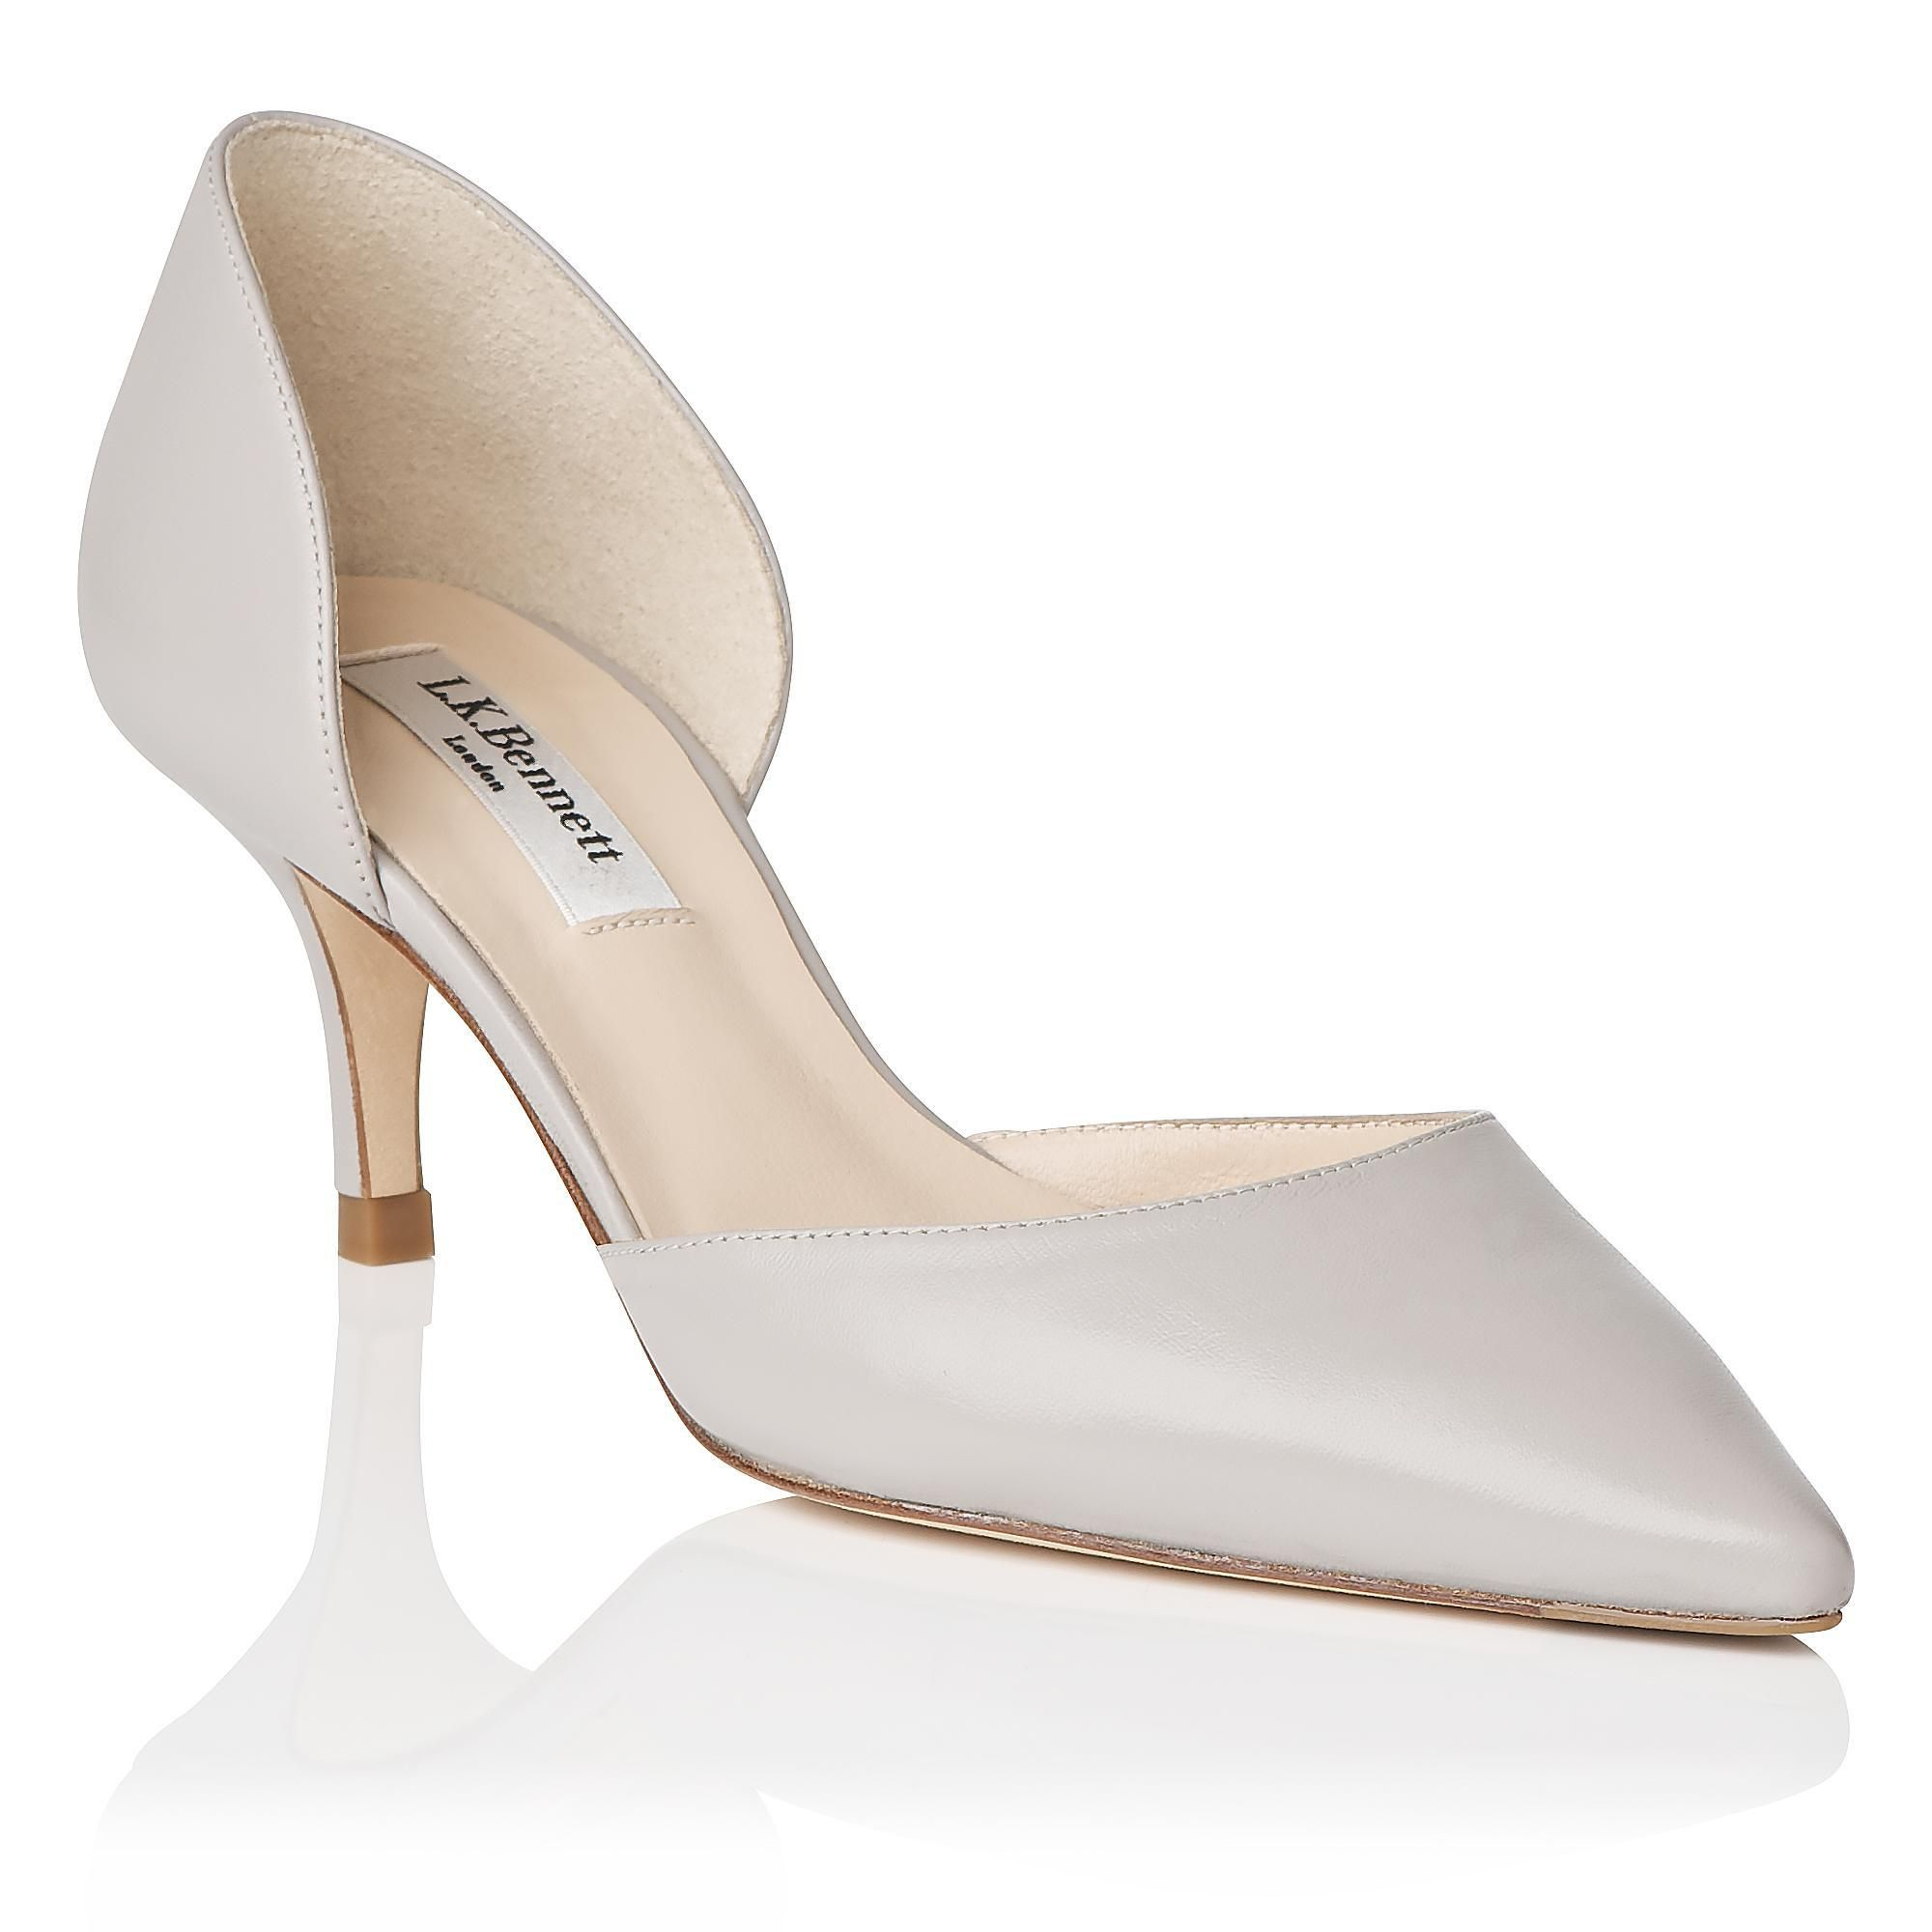 Florine Grey Courts | Shoes | Collections | L.K.Bennett, London